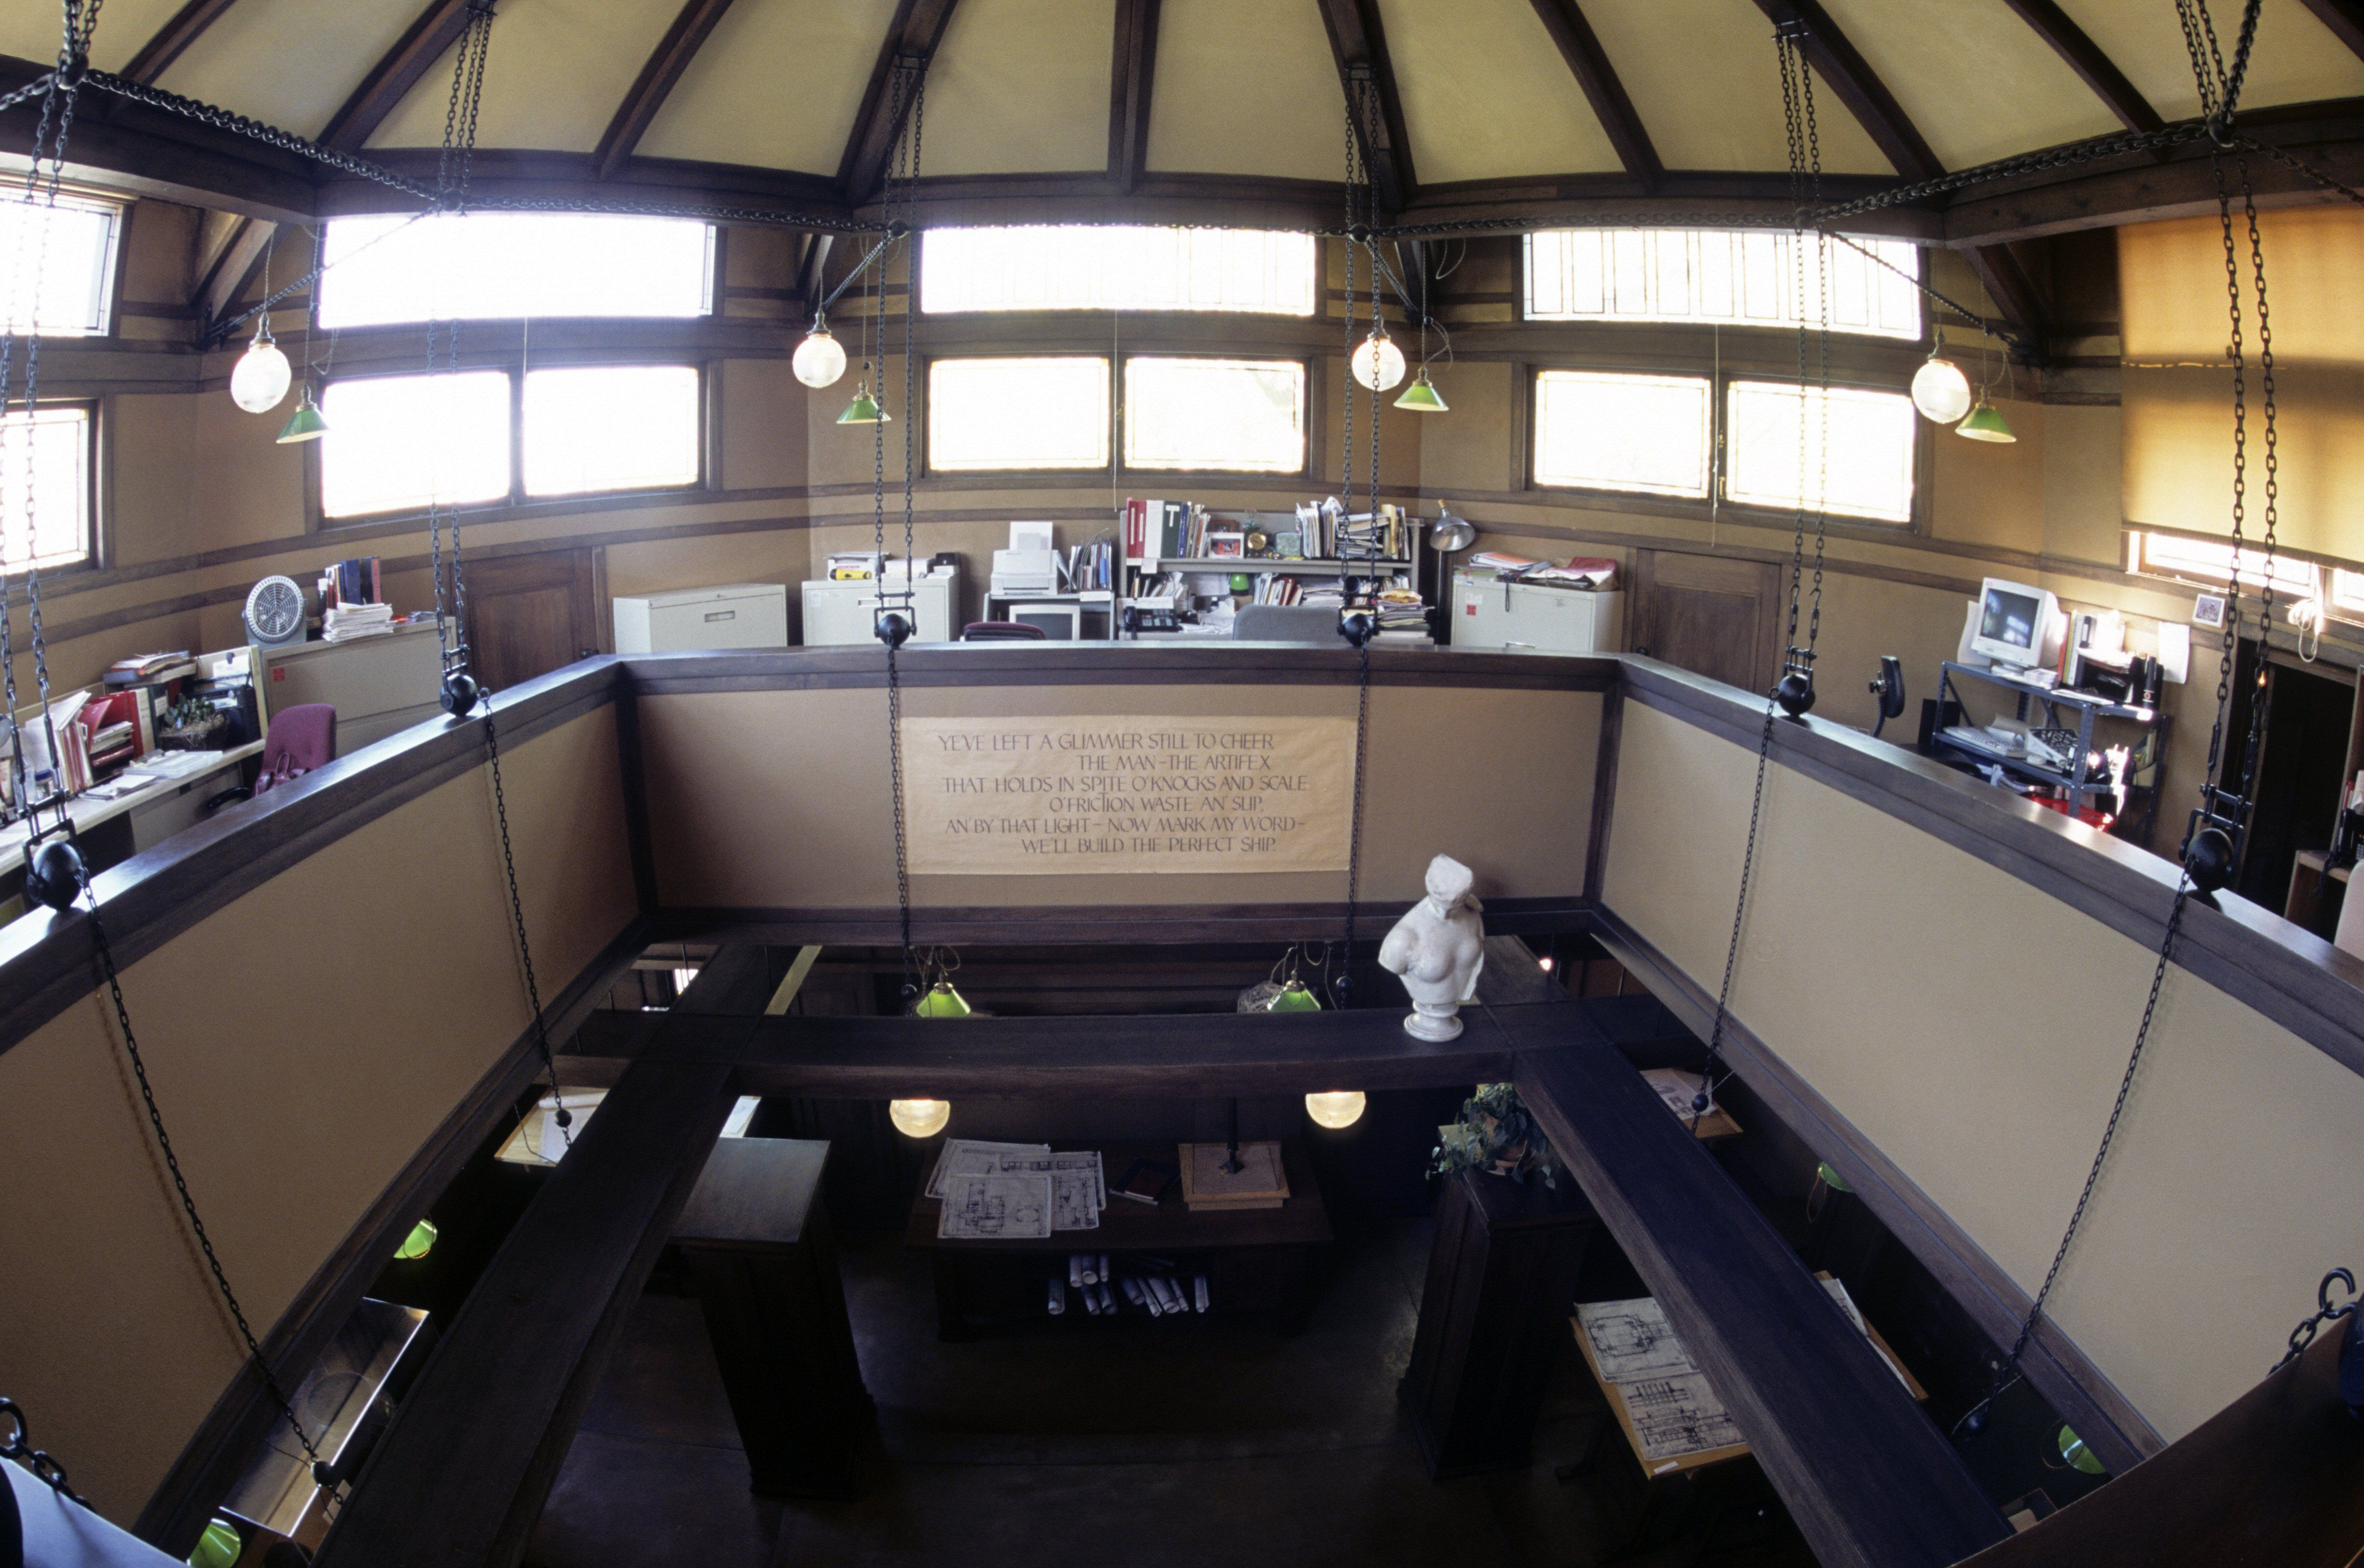 two level large space, balcony overlooking lower floor, Inside Frank Lloyd Wright's Studio, attached to his house in Oak Park, Illinois